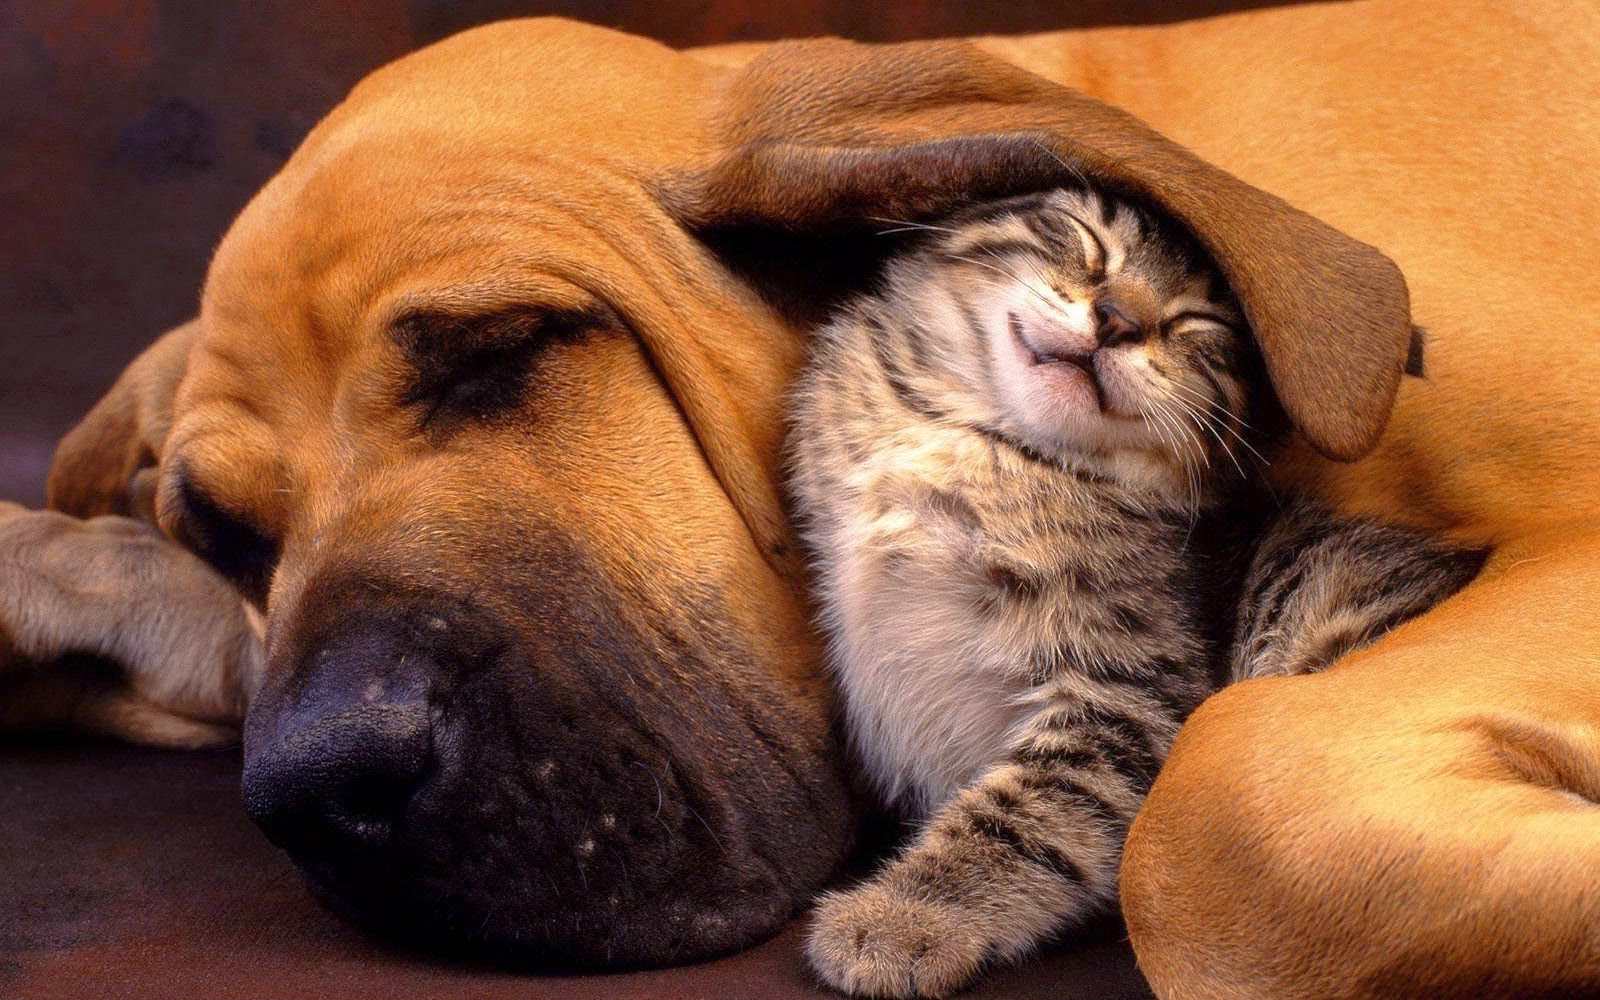 Cute dog and cat friends - photo#36